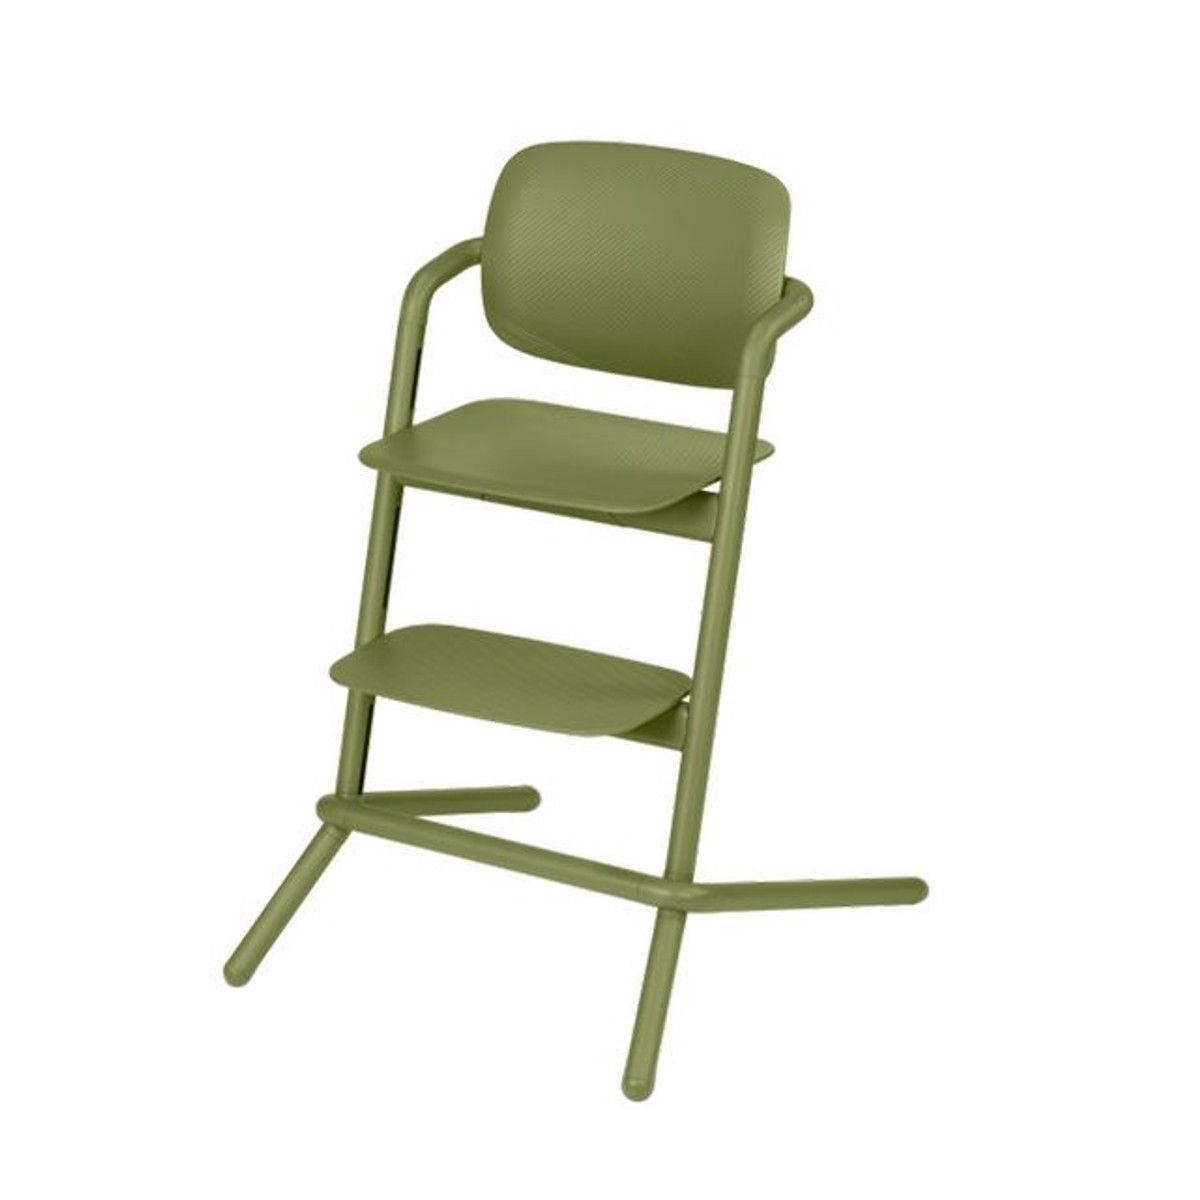 Chaise Haute Evolutive Lemo Outback Green Chaise Haute Bois